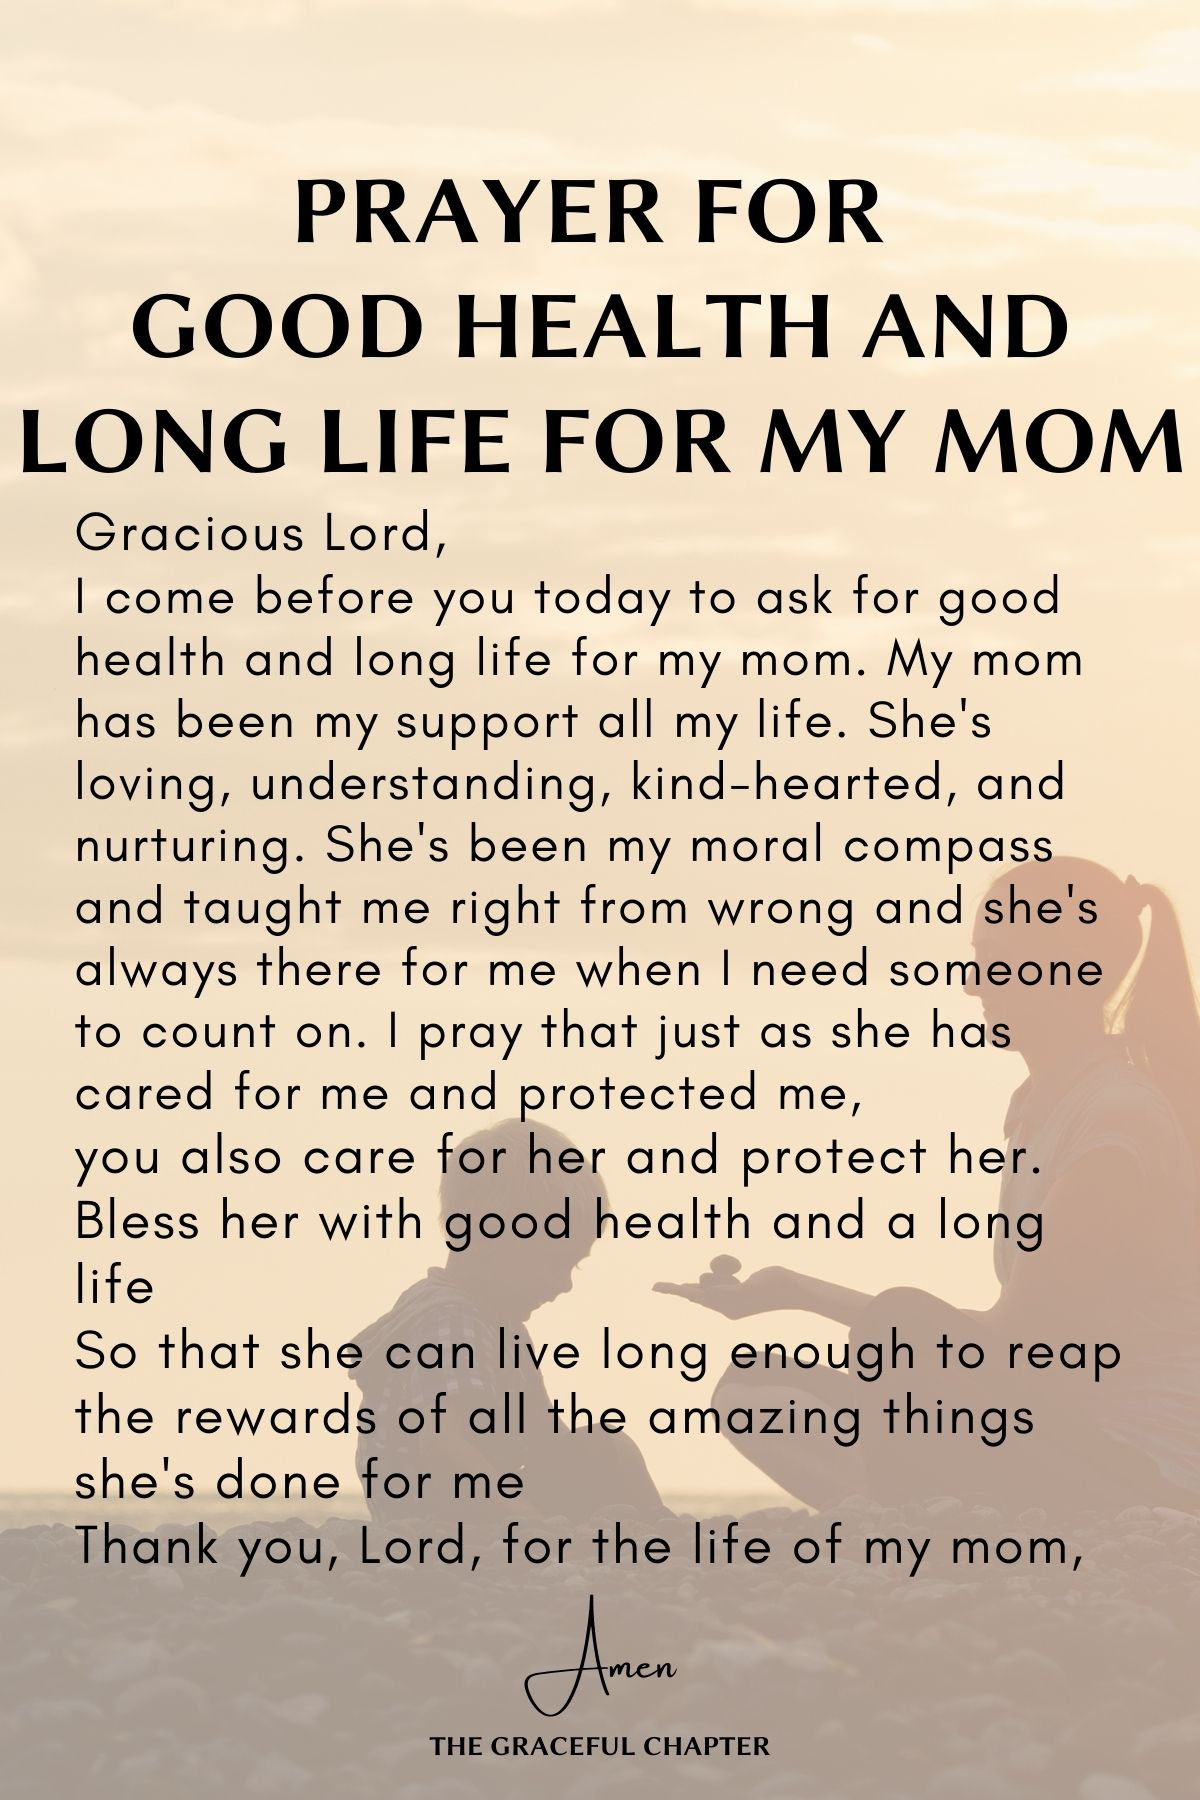 Prayer for good health and long life for my mom